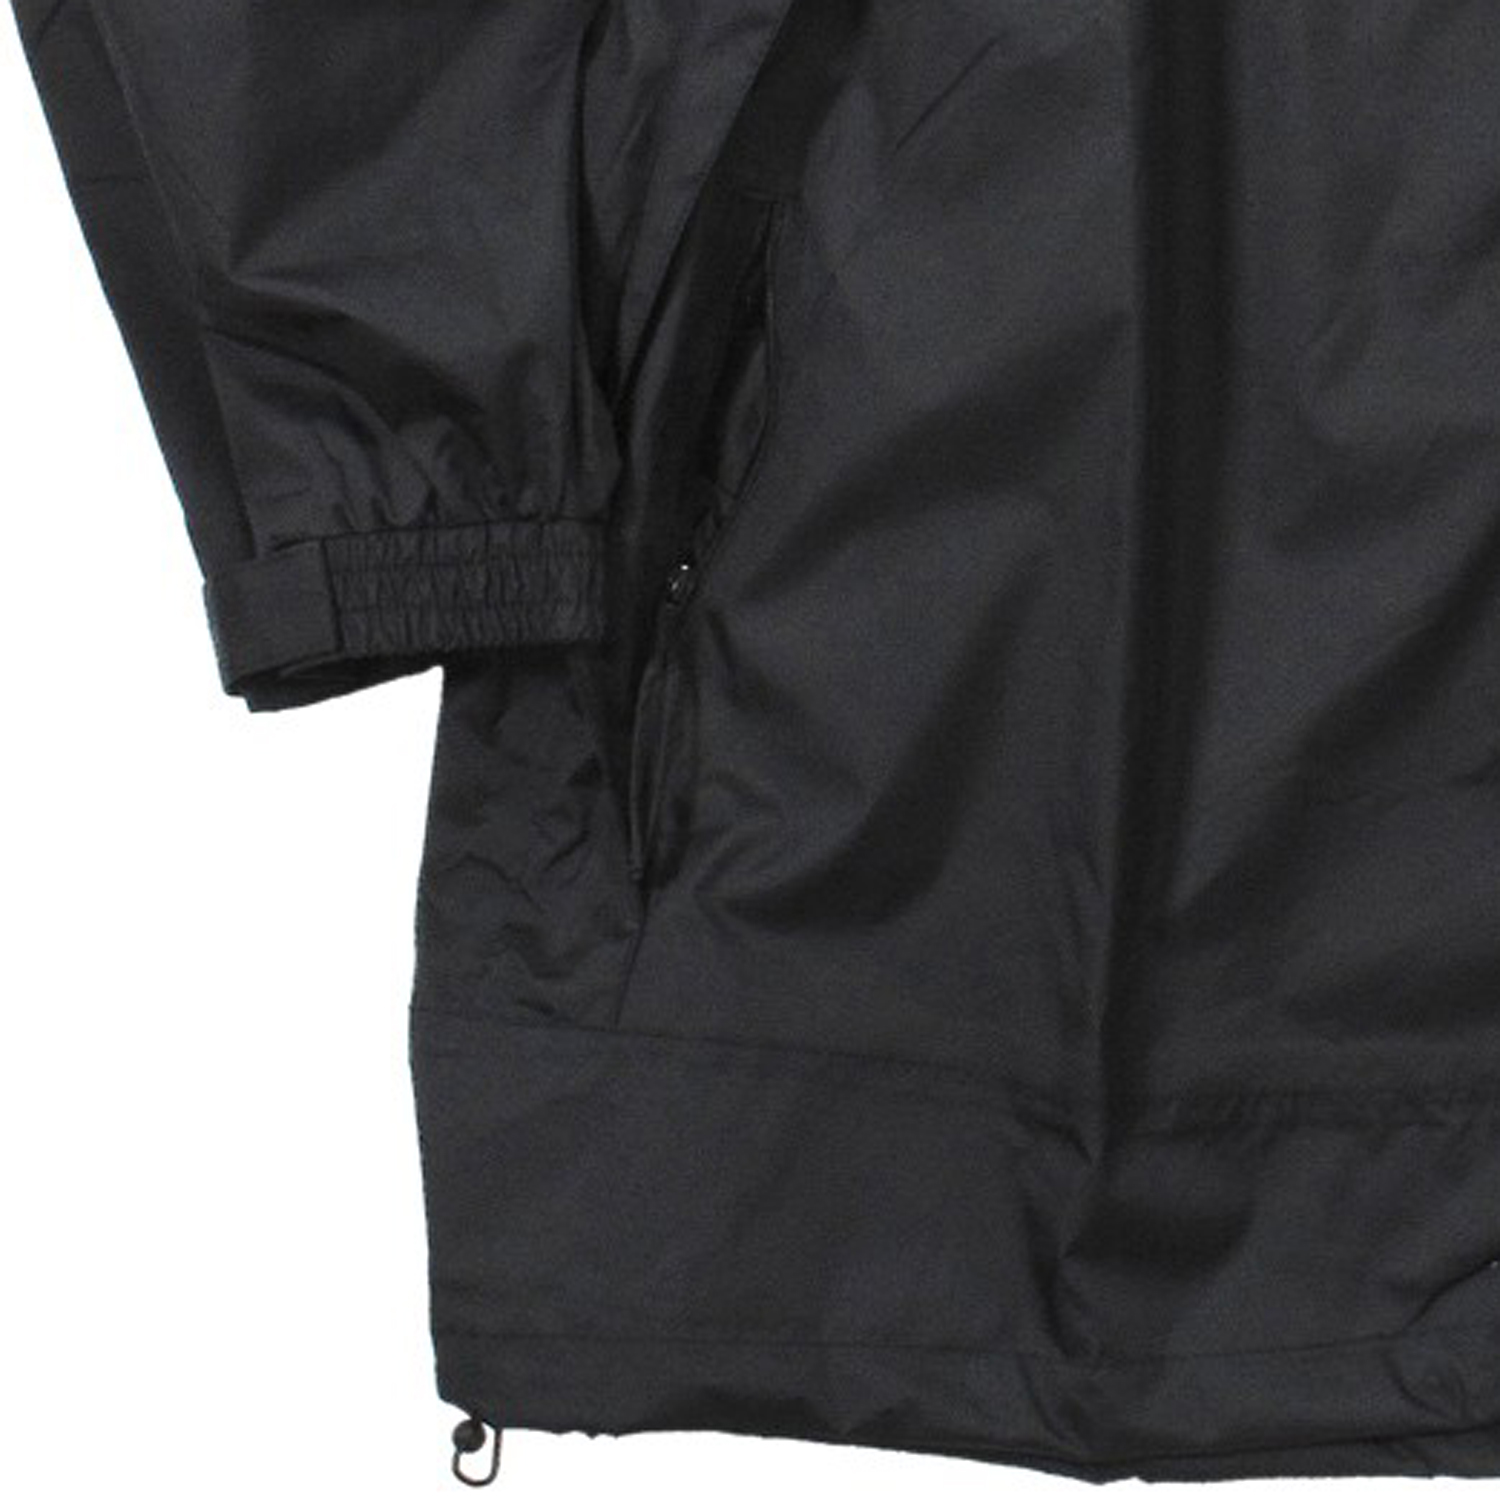 Detail Image to Black rain jacket from Aero in king sizes up to 8 XL